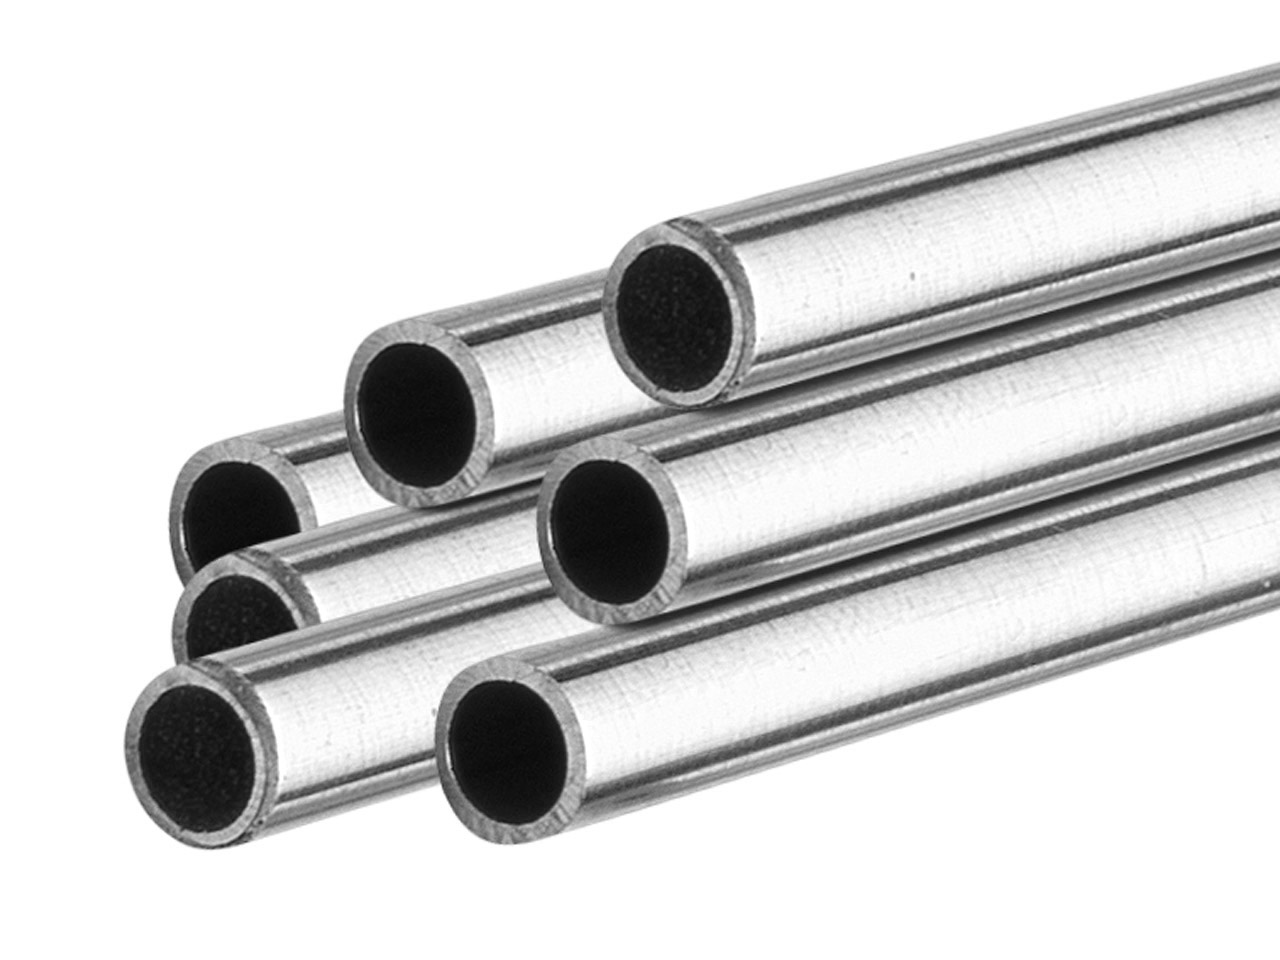 9ct Medium White Tube, Ref 3,      Outside Diameter 4.0mm,            Inside Diameter 3.0mm, 0.5mm Wall  Thickness